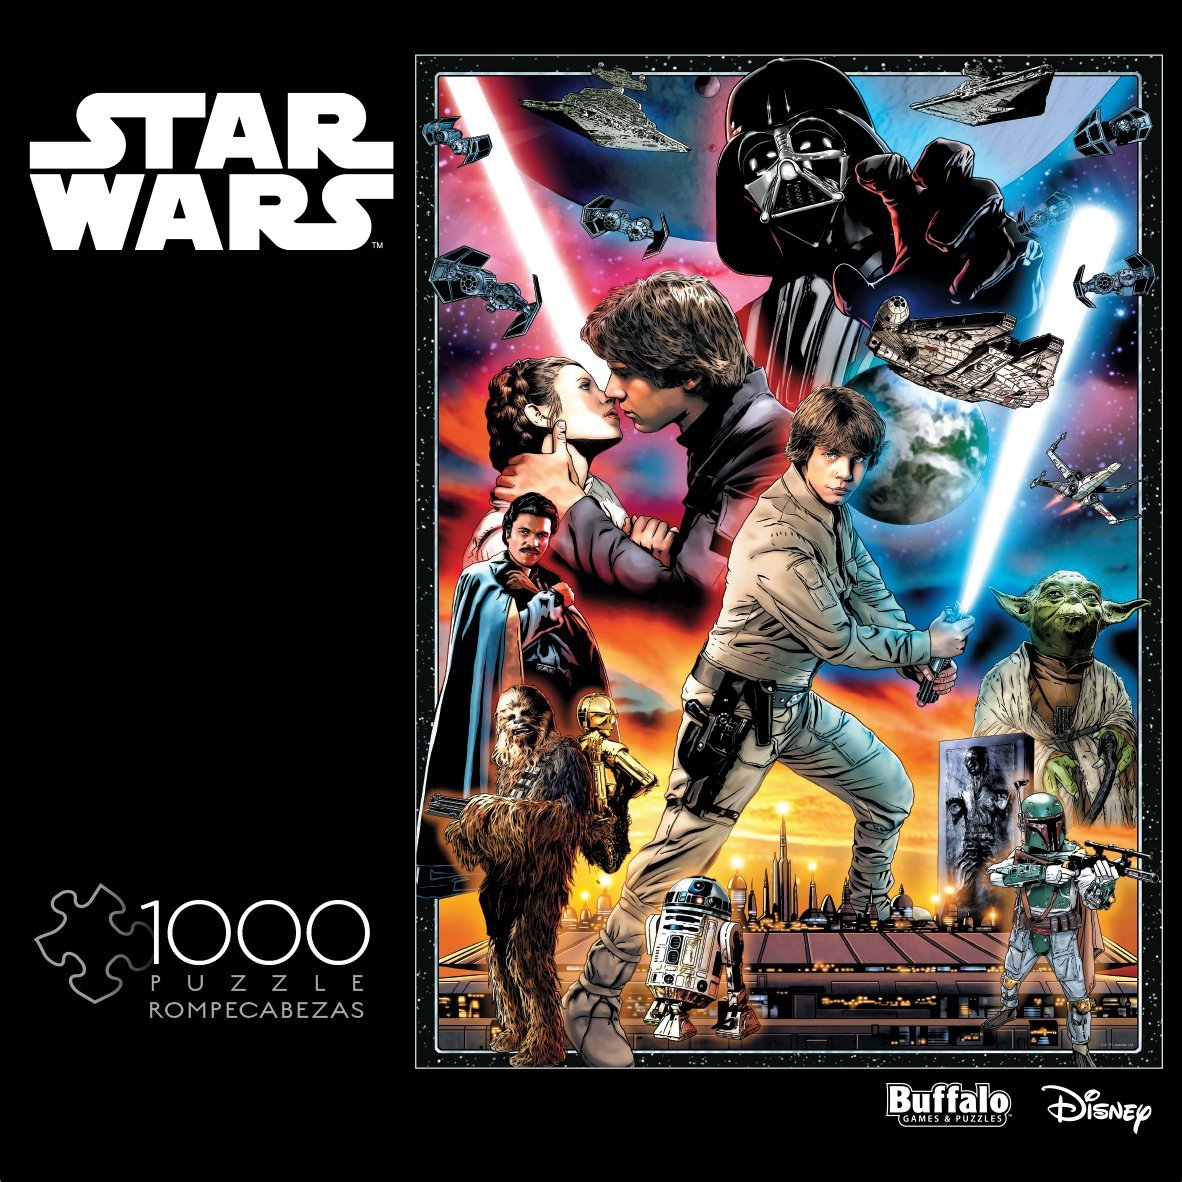 Star Wars Assort: Full Of Surprises 1000